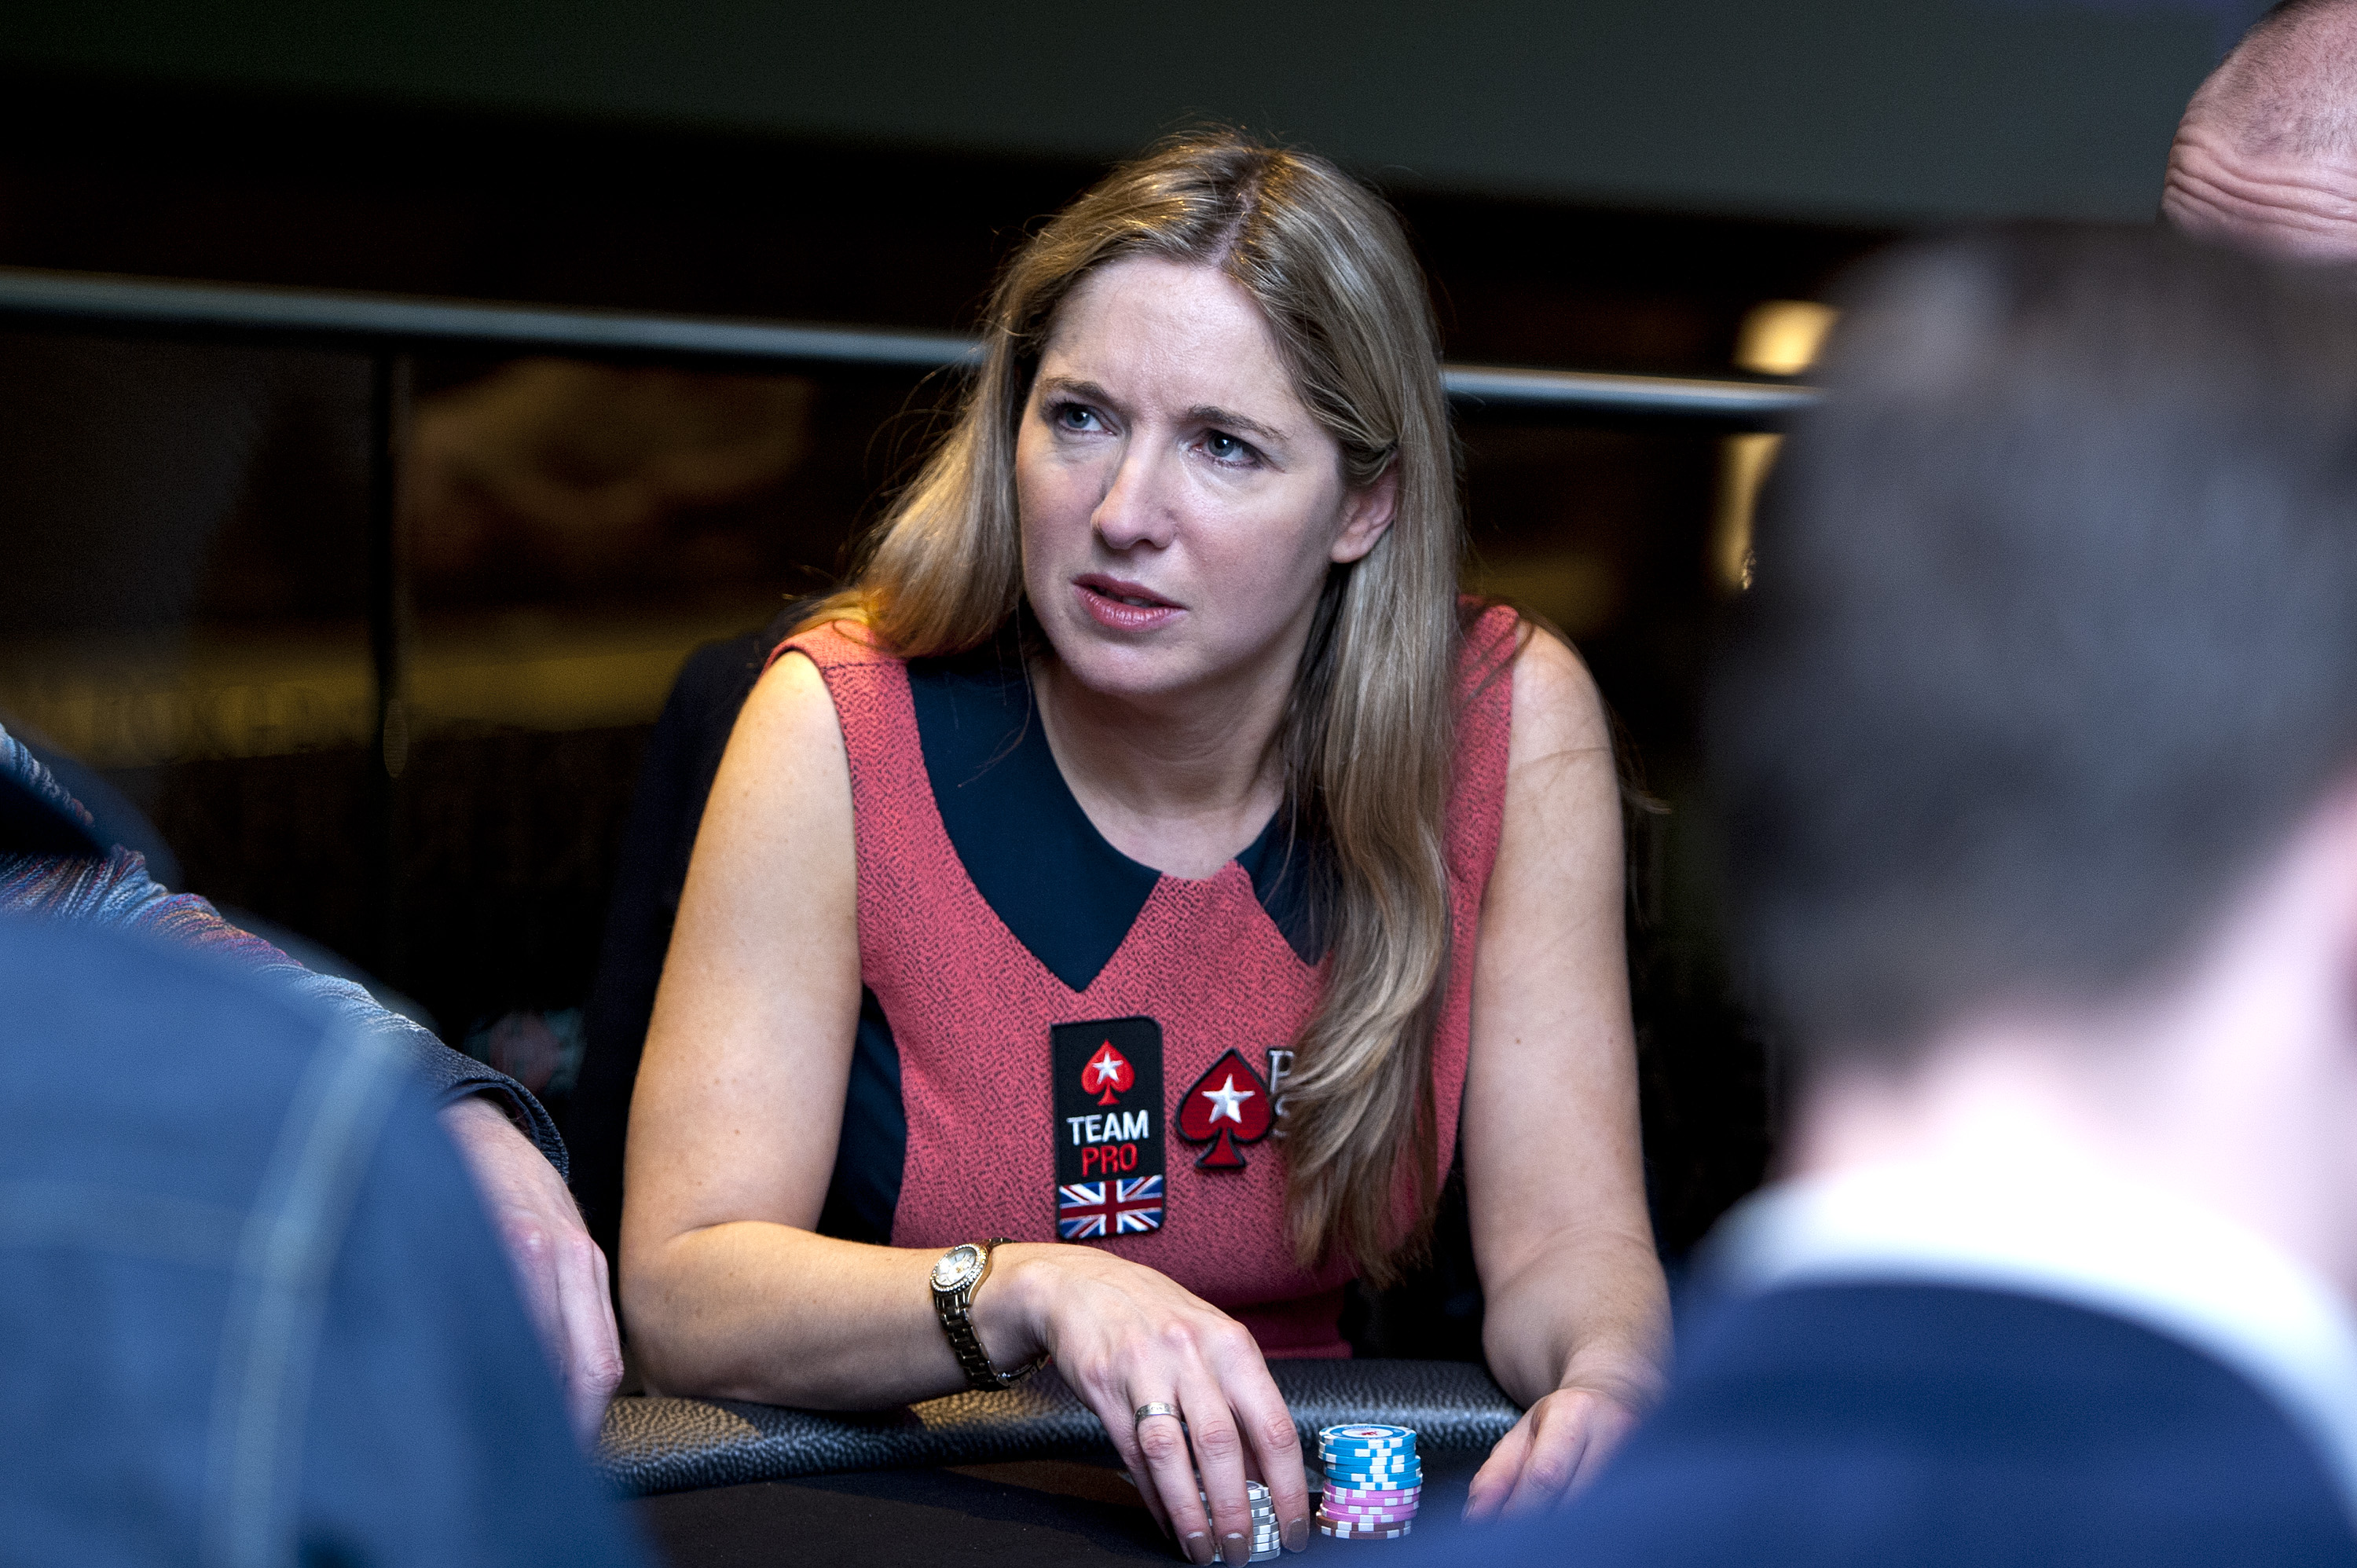 Victoria Coren Mitchell attends the launch of The PokerStars LIVE Lounge at The Hippodrome Casino London on March 4, 2013 in London, England